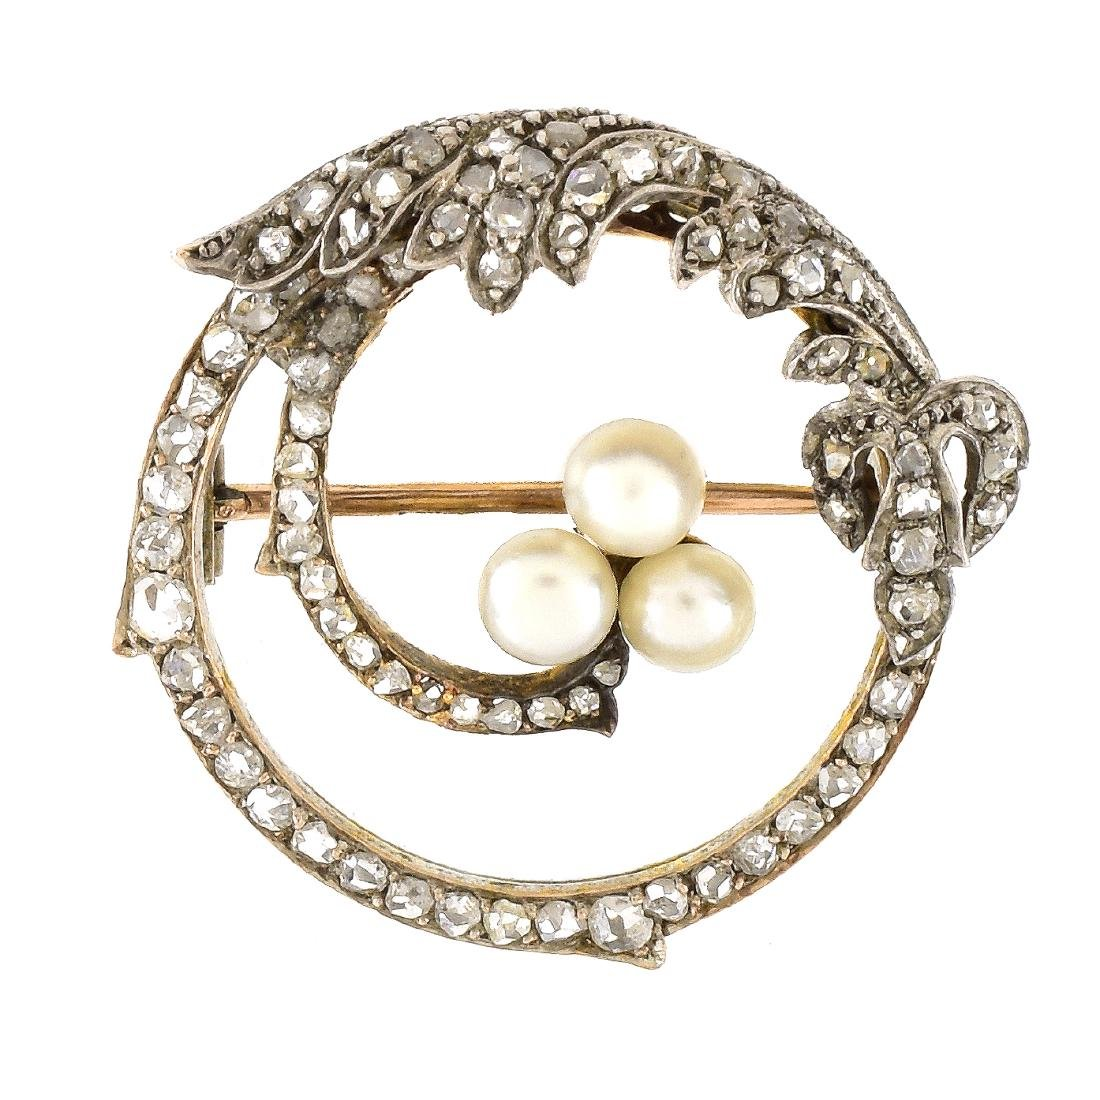 Russian Diamond, 14K Gold and Pearl Brooch